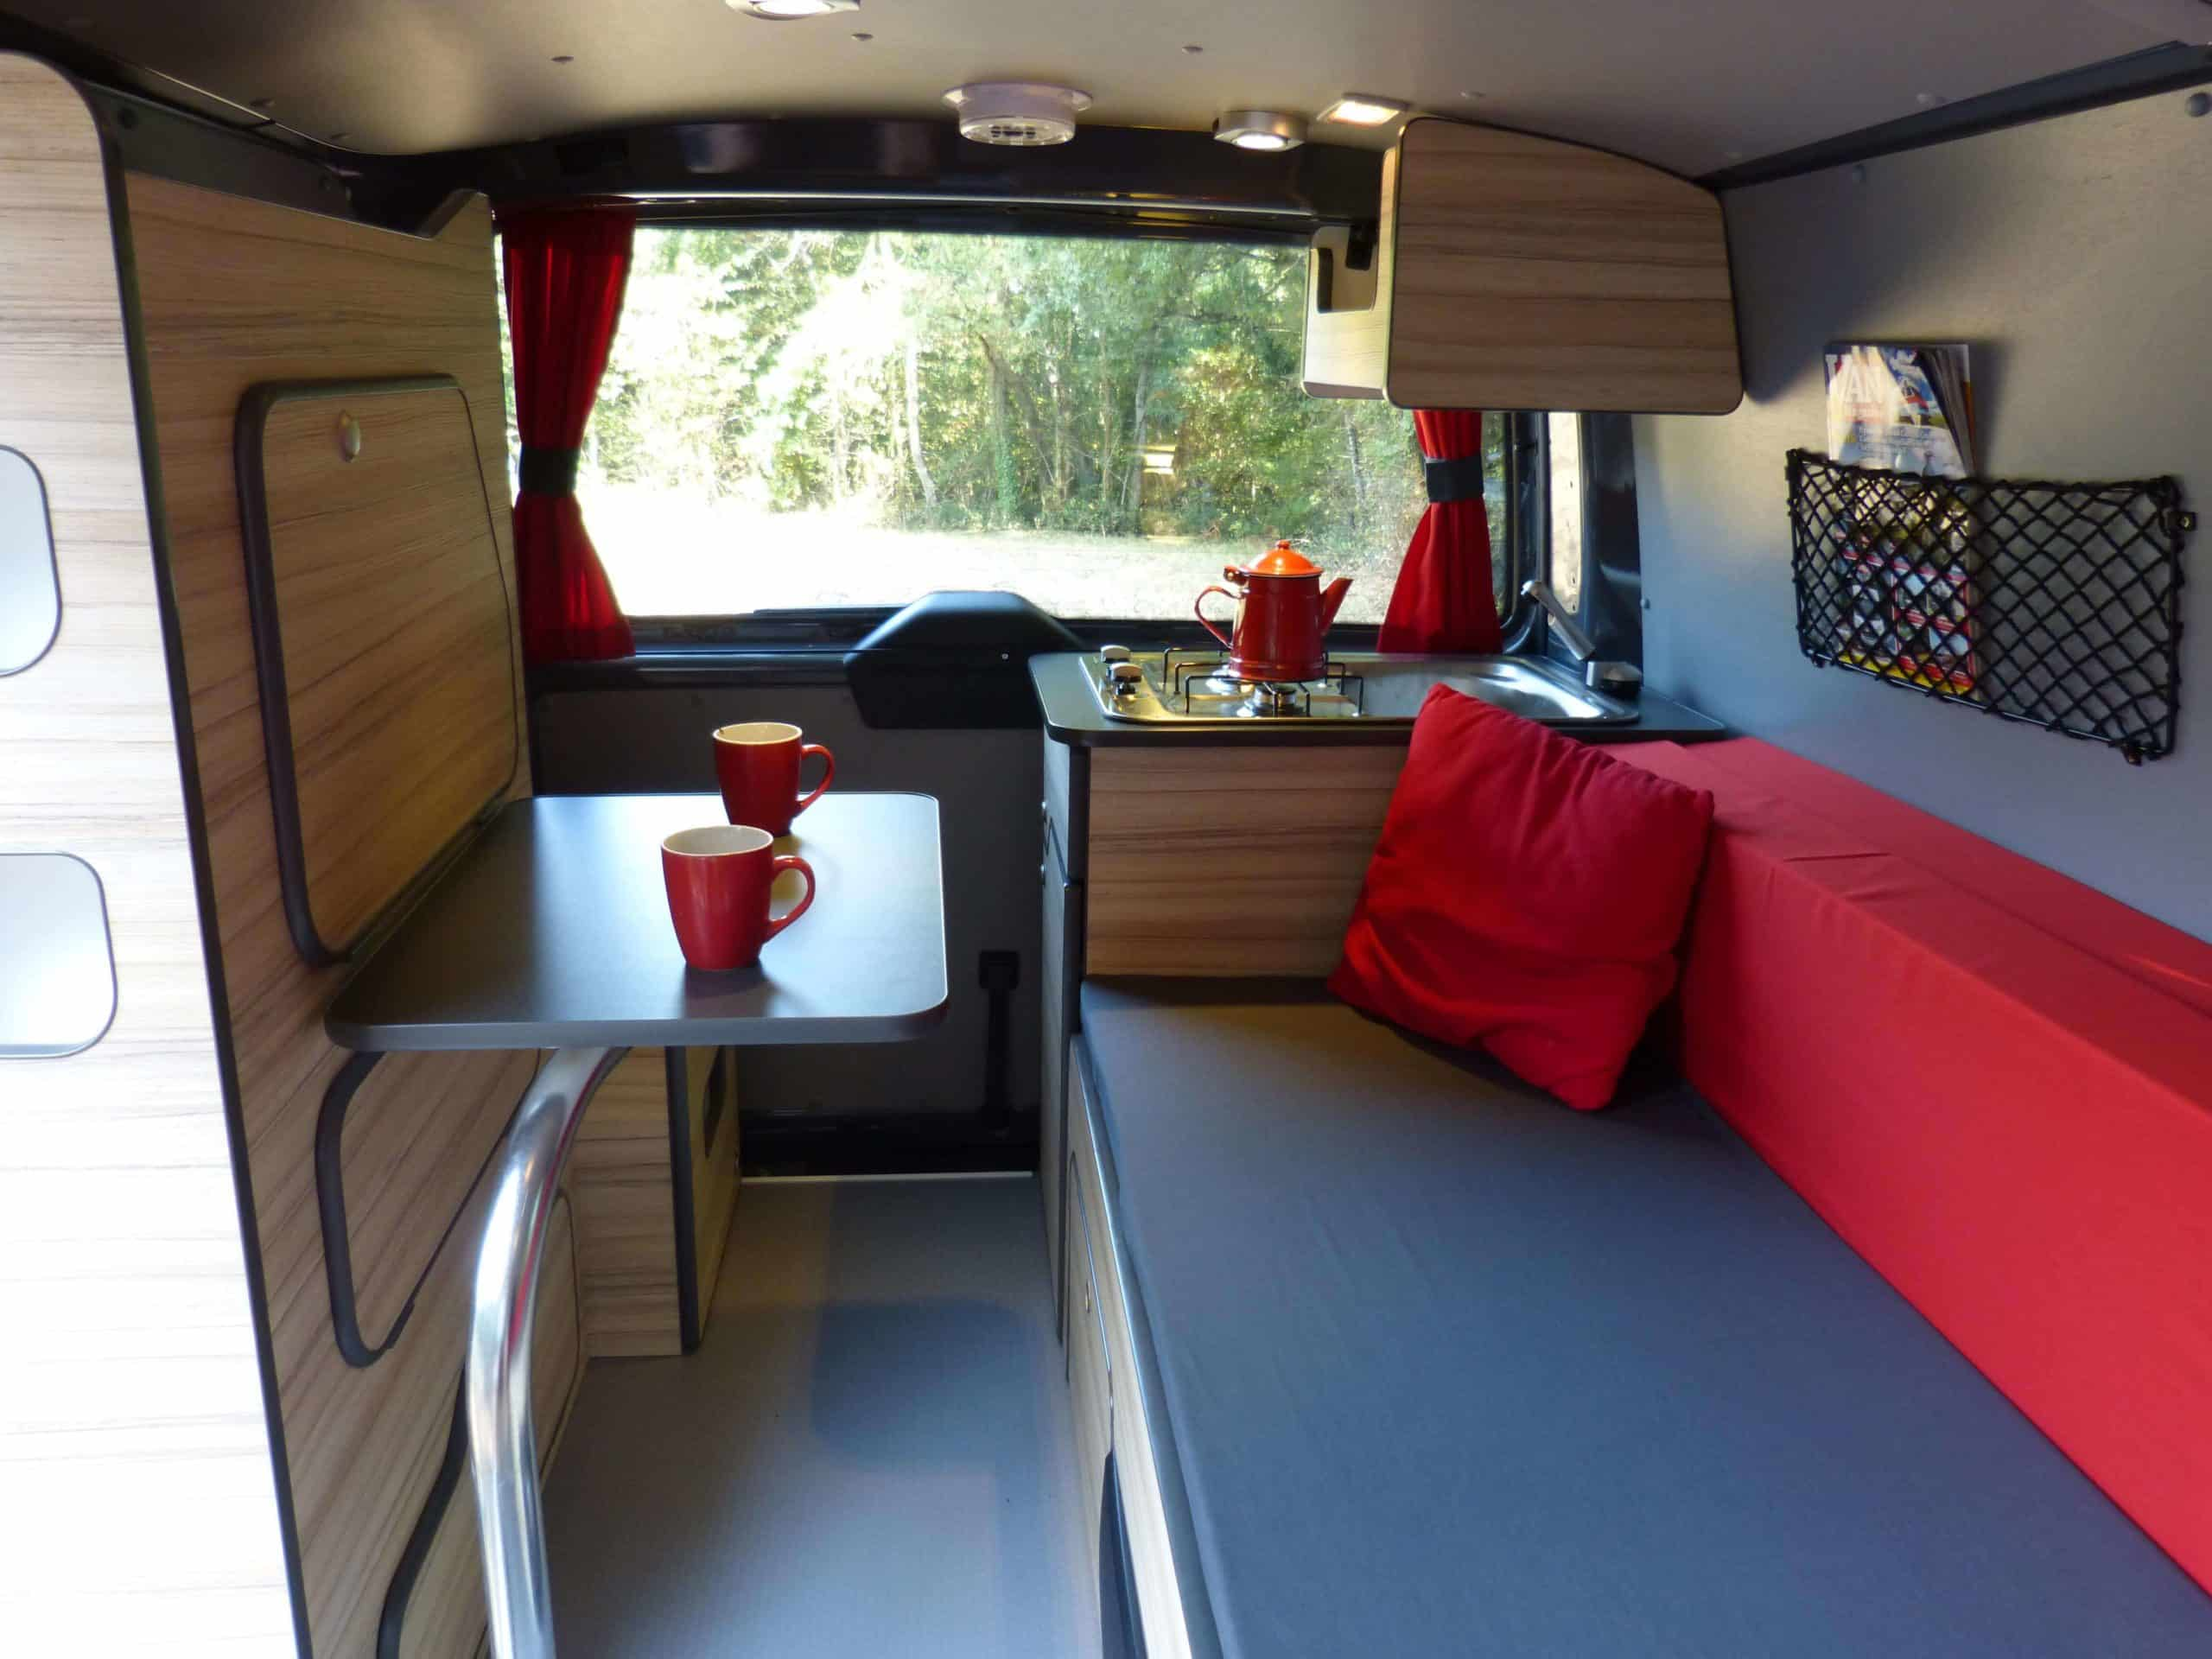 parc-de-van-amnag-neuf-freed-home-camper